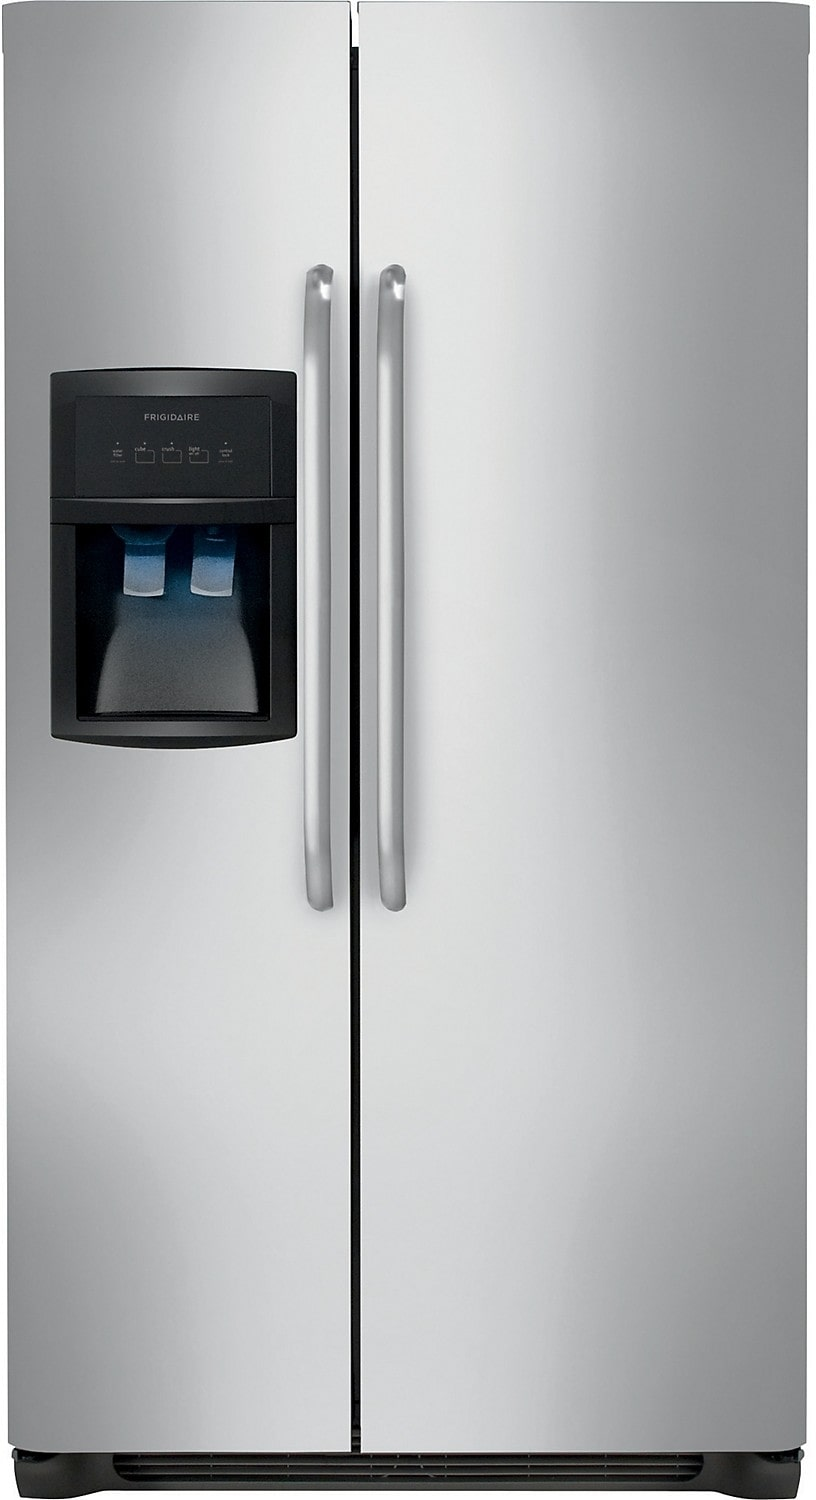 Frigidaire 23 Cu. Ft. Standard-Depth Side-by-Side Refrigerator - Stainless Steel